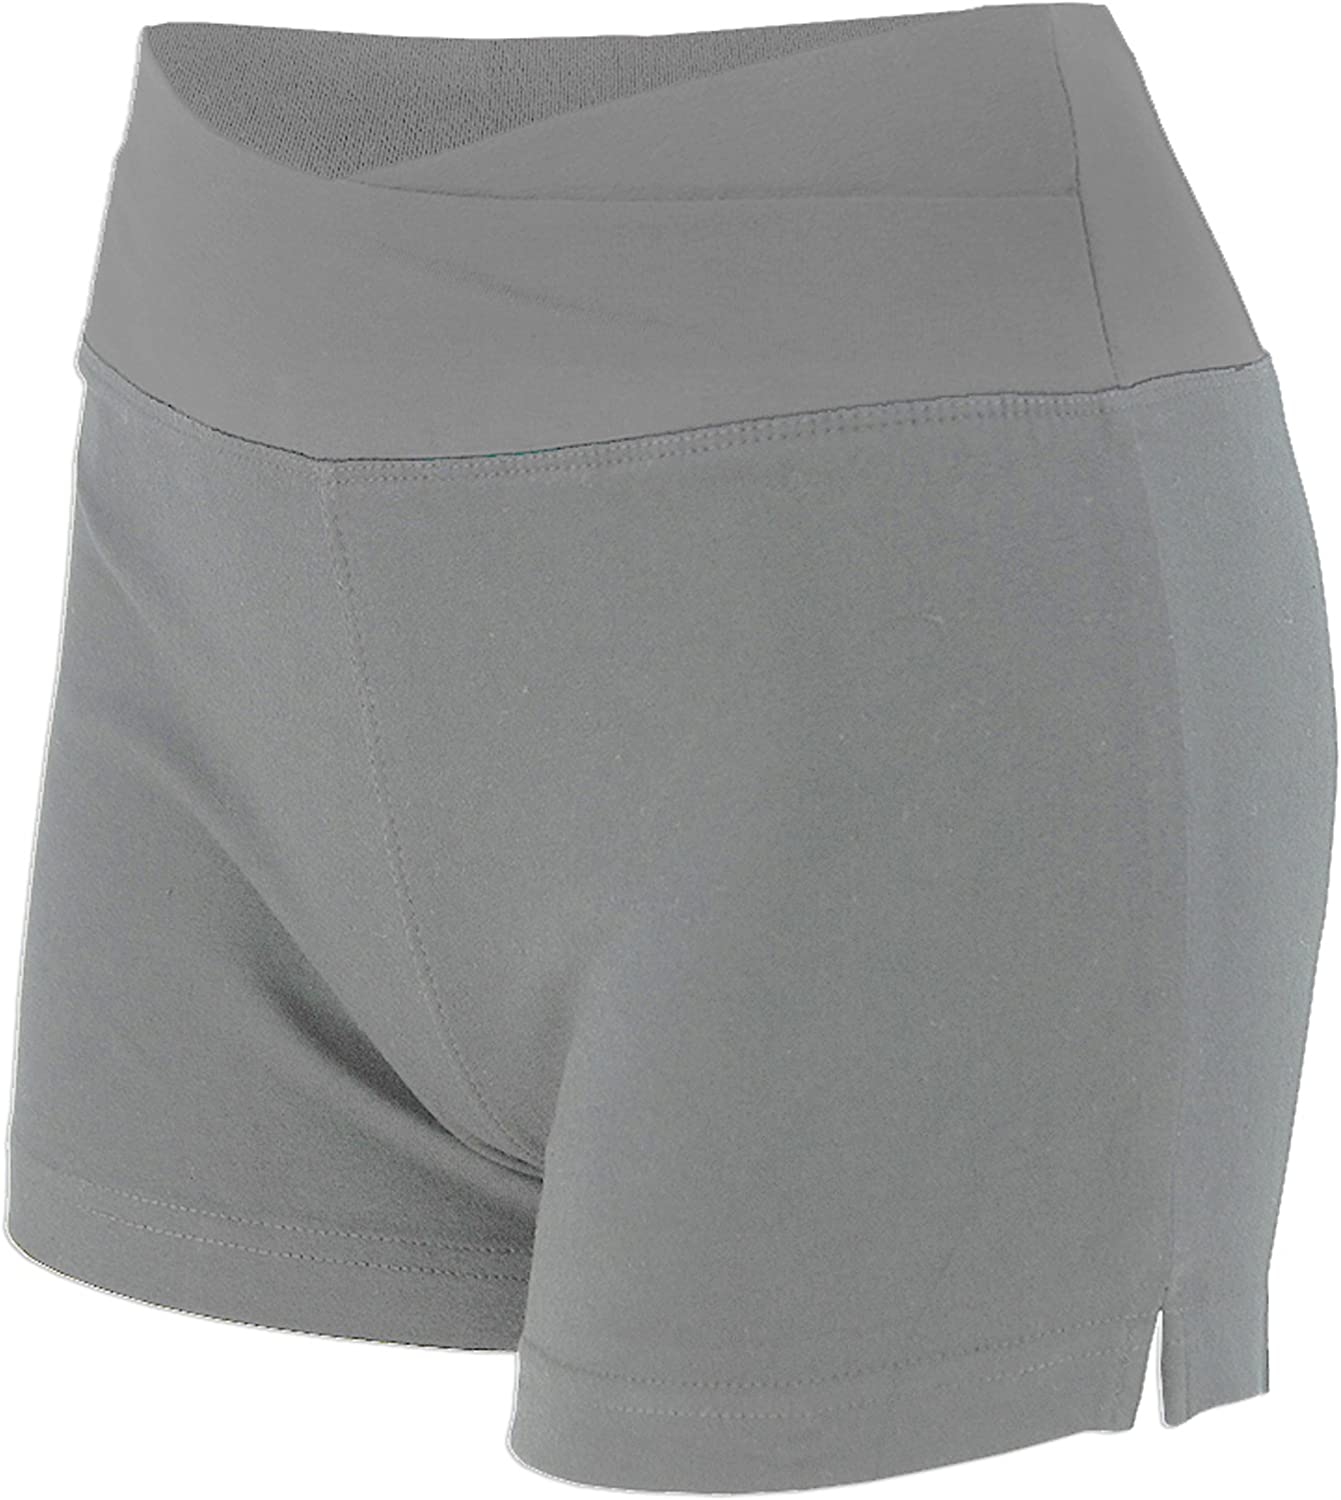 Womens Lady Cotton Spandex Fold Over Waist Yoga Short Pants